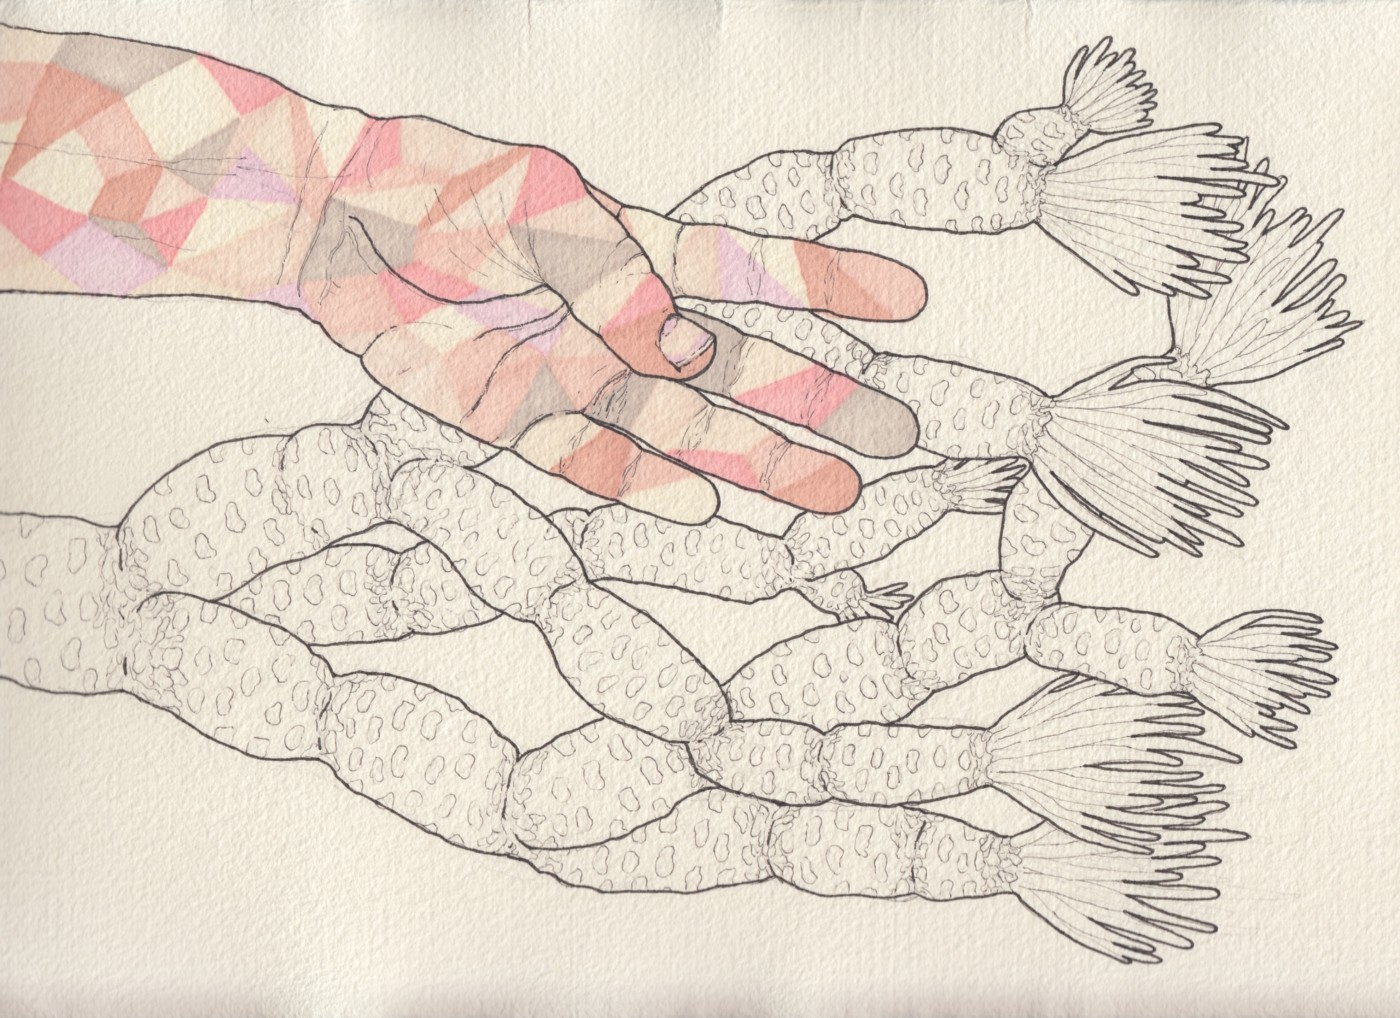 Sincronización — hand-drown image with hands